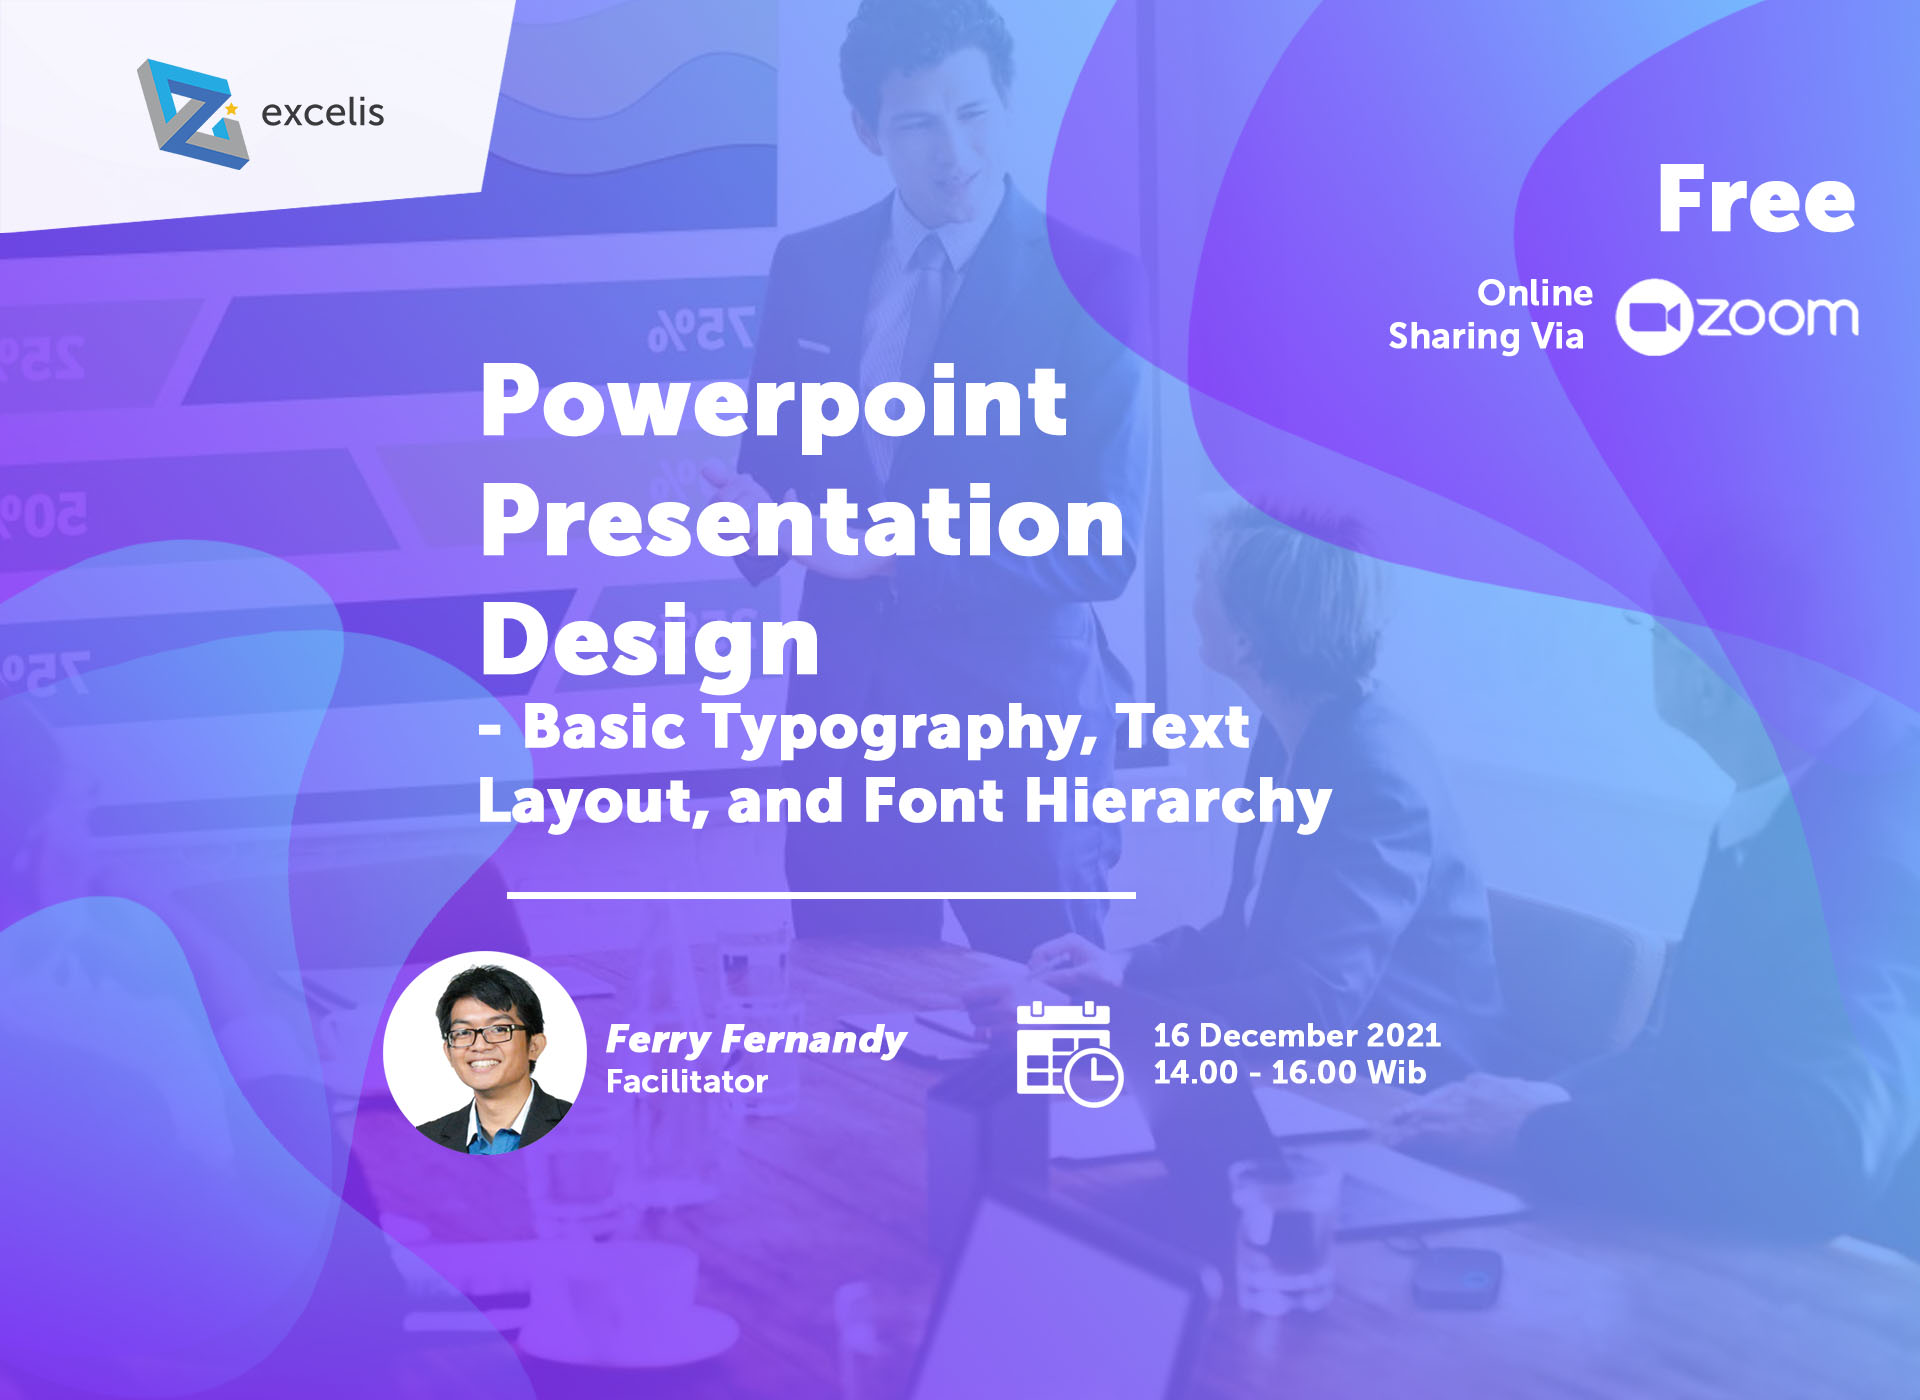 Powerpoint Presentation Design – Basic Typography, Text Layout, and Font Hierarchy